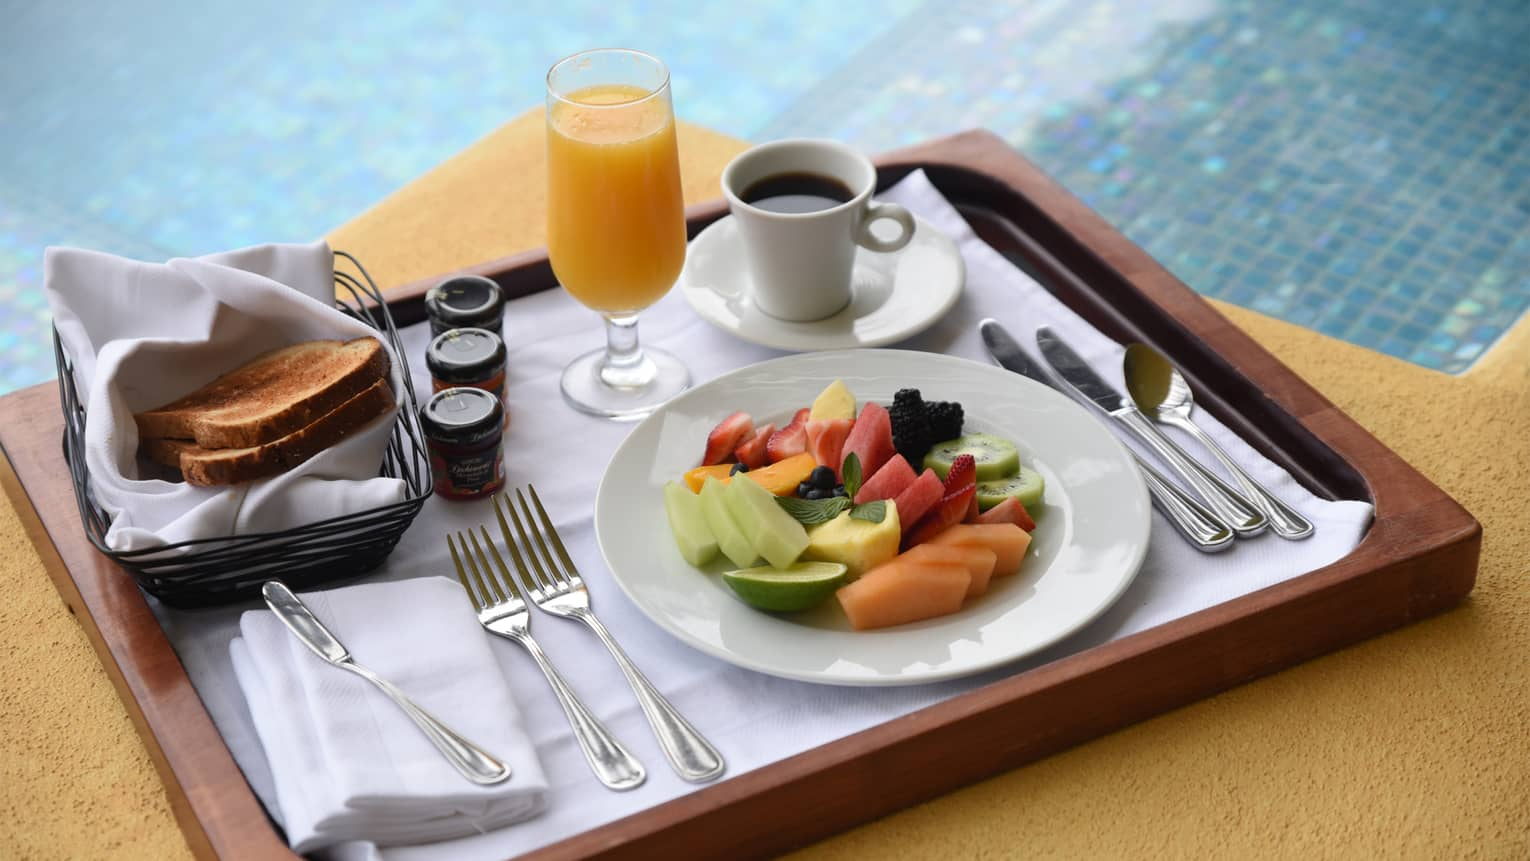 In-room dining tray with plate of tropical fruit slices, orange juice, toast, small jam jars, coffee in mug